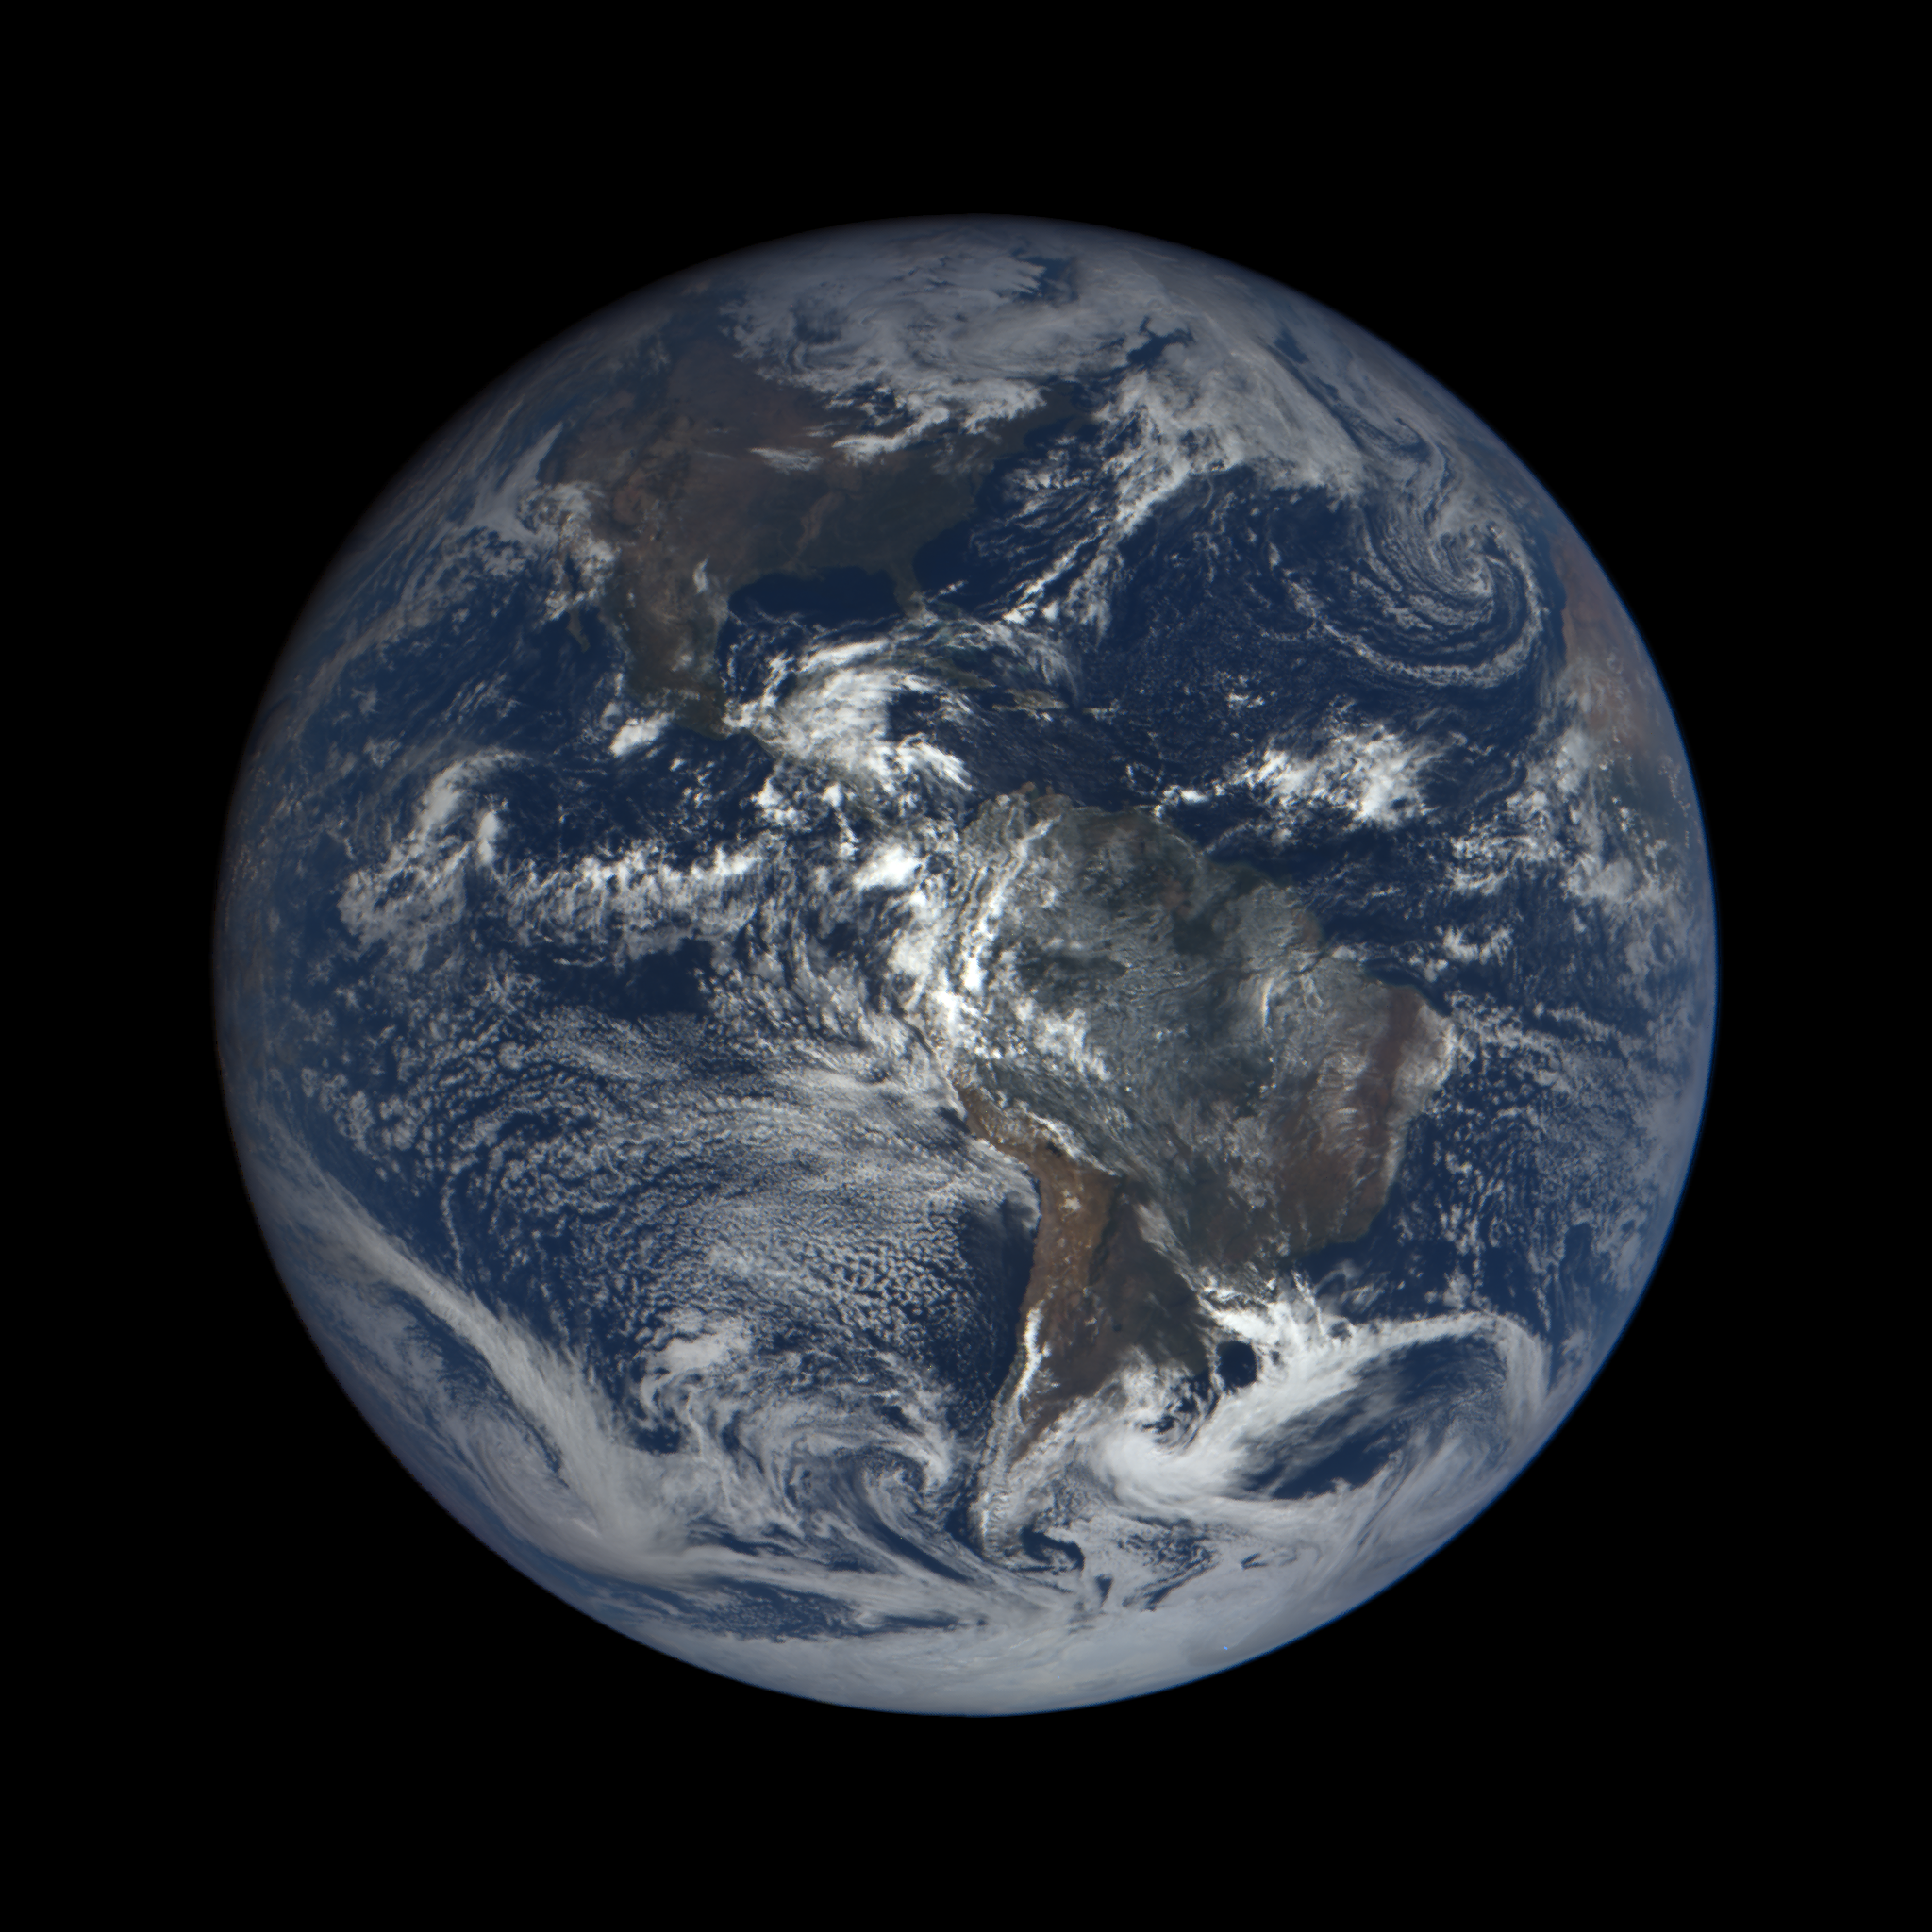 Nasa Space Pictures Of Earth Daily Views of ...